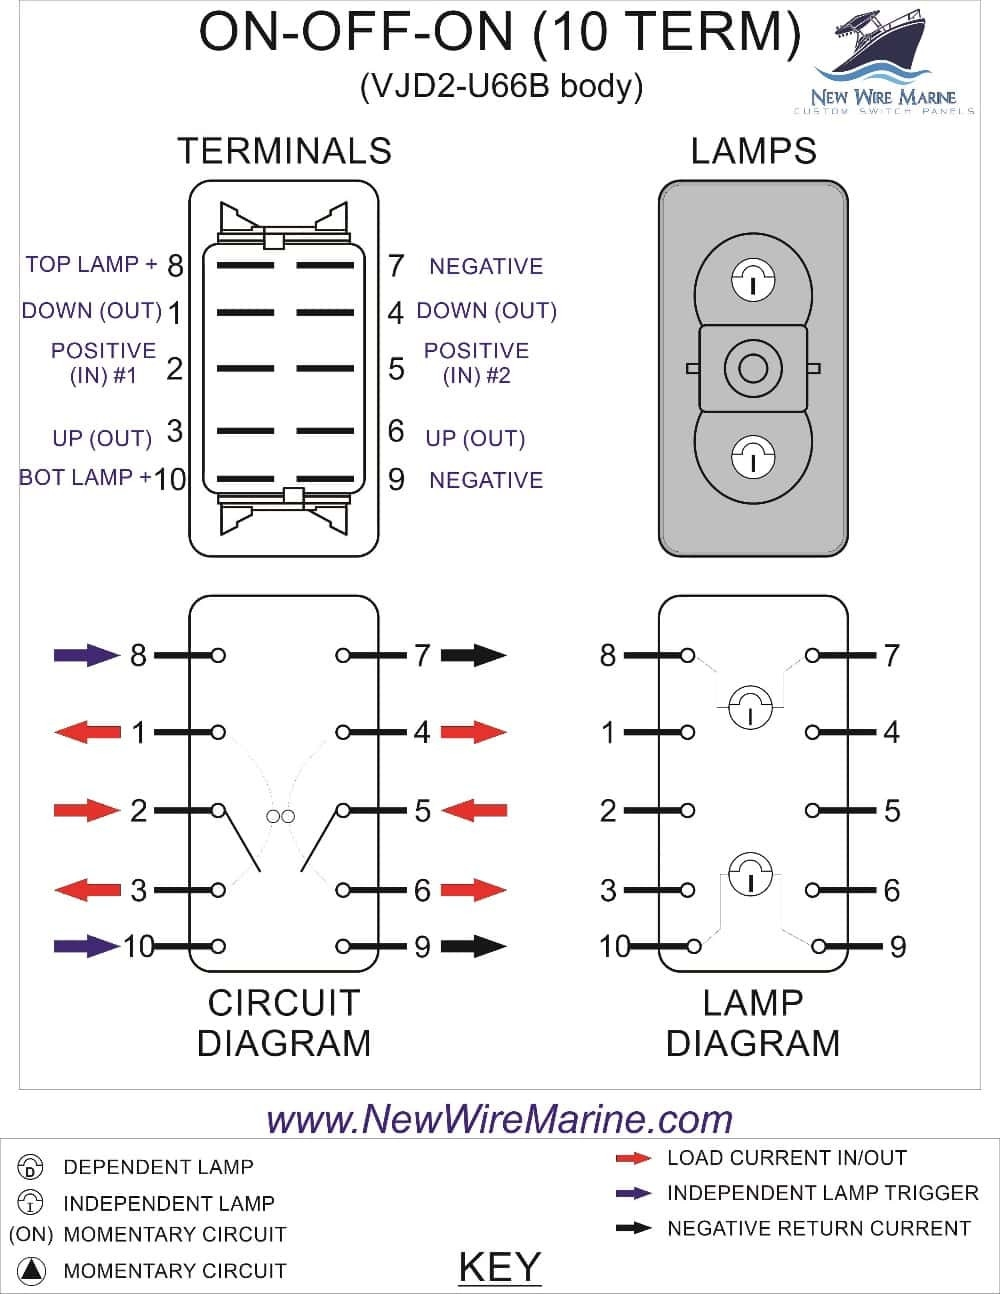 dpst toggle switch wiring diagram 6 pin dpdt switch wiring diagram | free wiring diagram 4 prong toggle switch wiring diagram #5